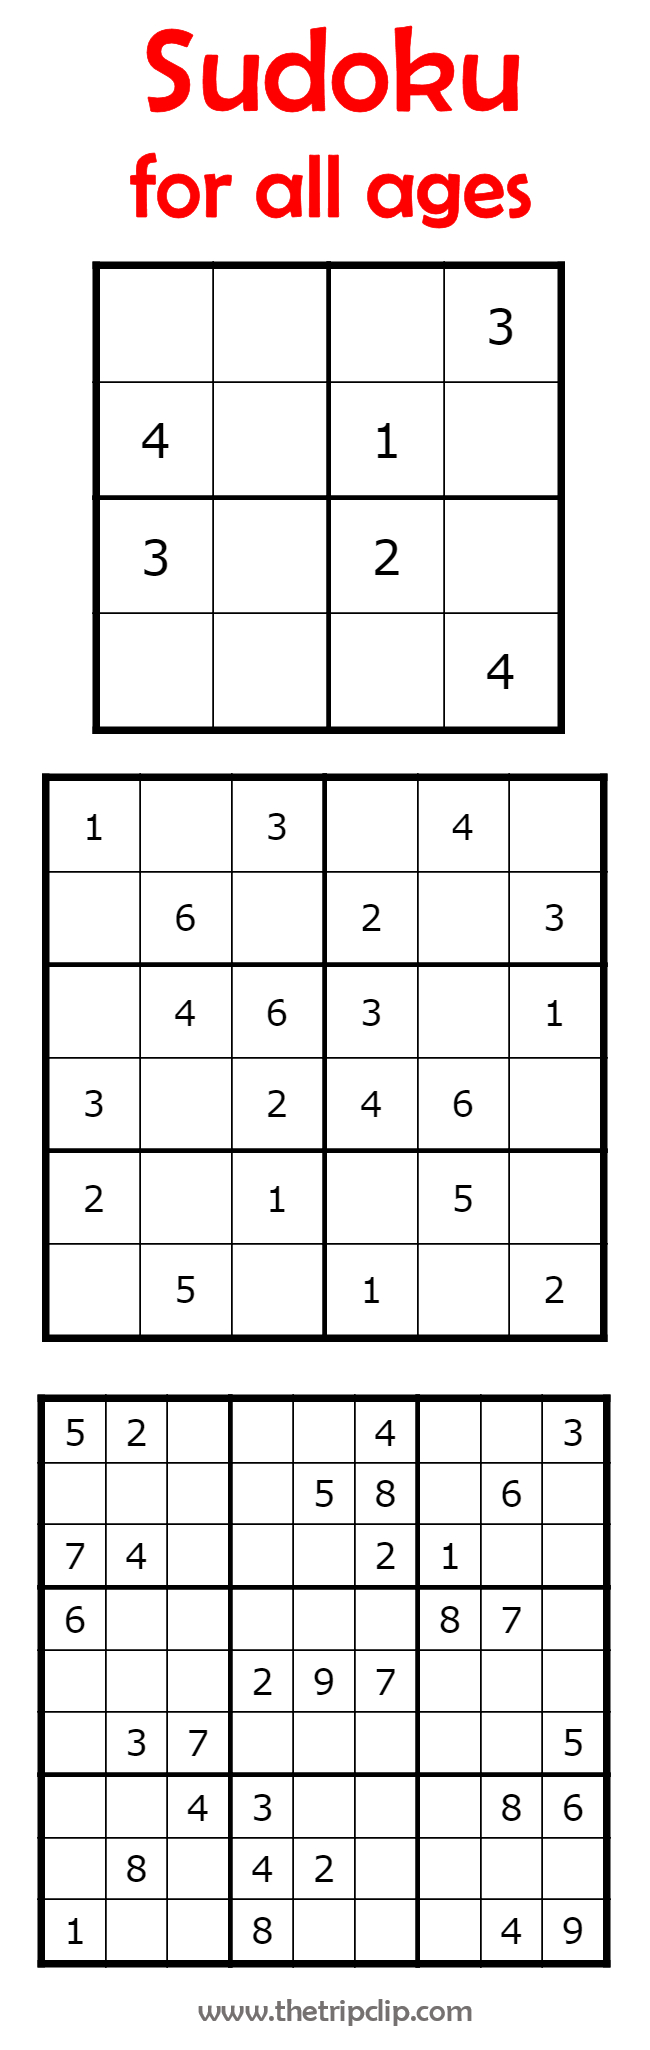 Sudoku For All Ages Plus Lots Of Other Printable Activities For Kids - Printable Sudoku Puzzles 4X4